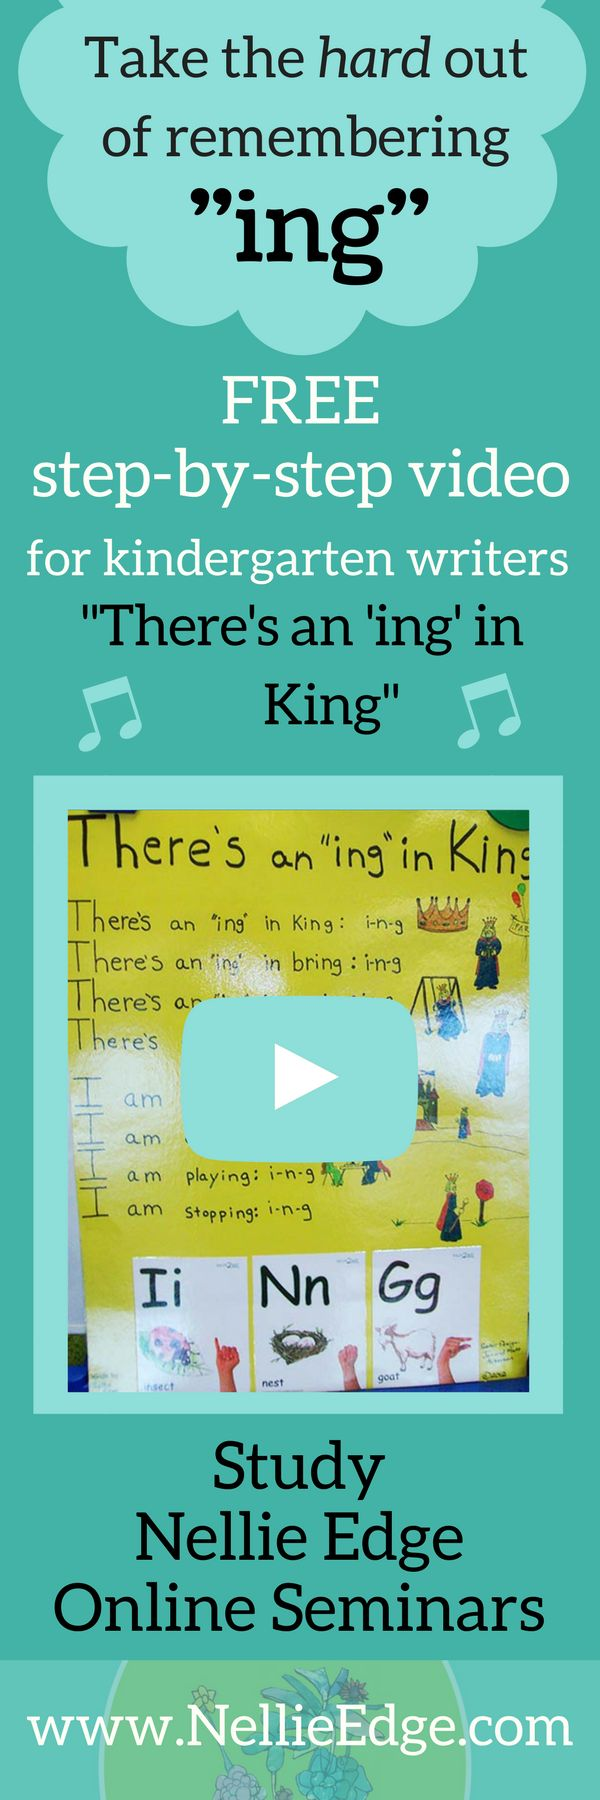 """Make kindergarten phonics learning easy and fun: Teach the King of """"ing!"""" Enjoy free video clip from Nellie Edge Online Seminar #3, """"Accelerated Literacy with High-Frequency Sight Words."""" http://nellieedge.com/professional-development/ Build stamina for kindergarten writing workshop with Nellie Edge """"Sing, Sign, Spell, and Read"""" program at http://www.nellieedge.com/read-sing.htm#program 